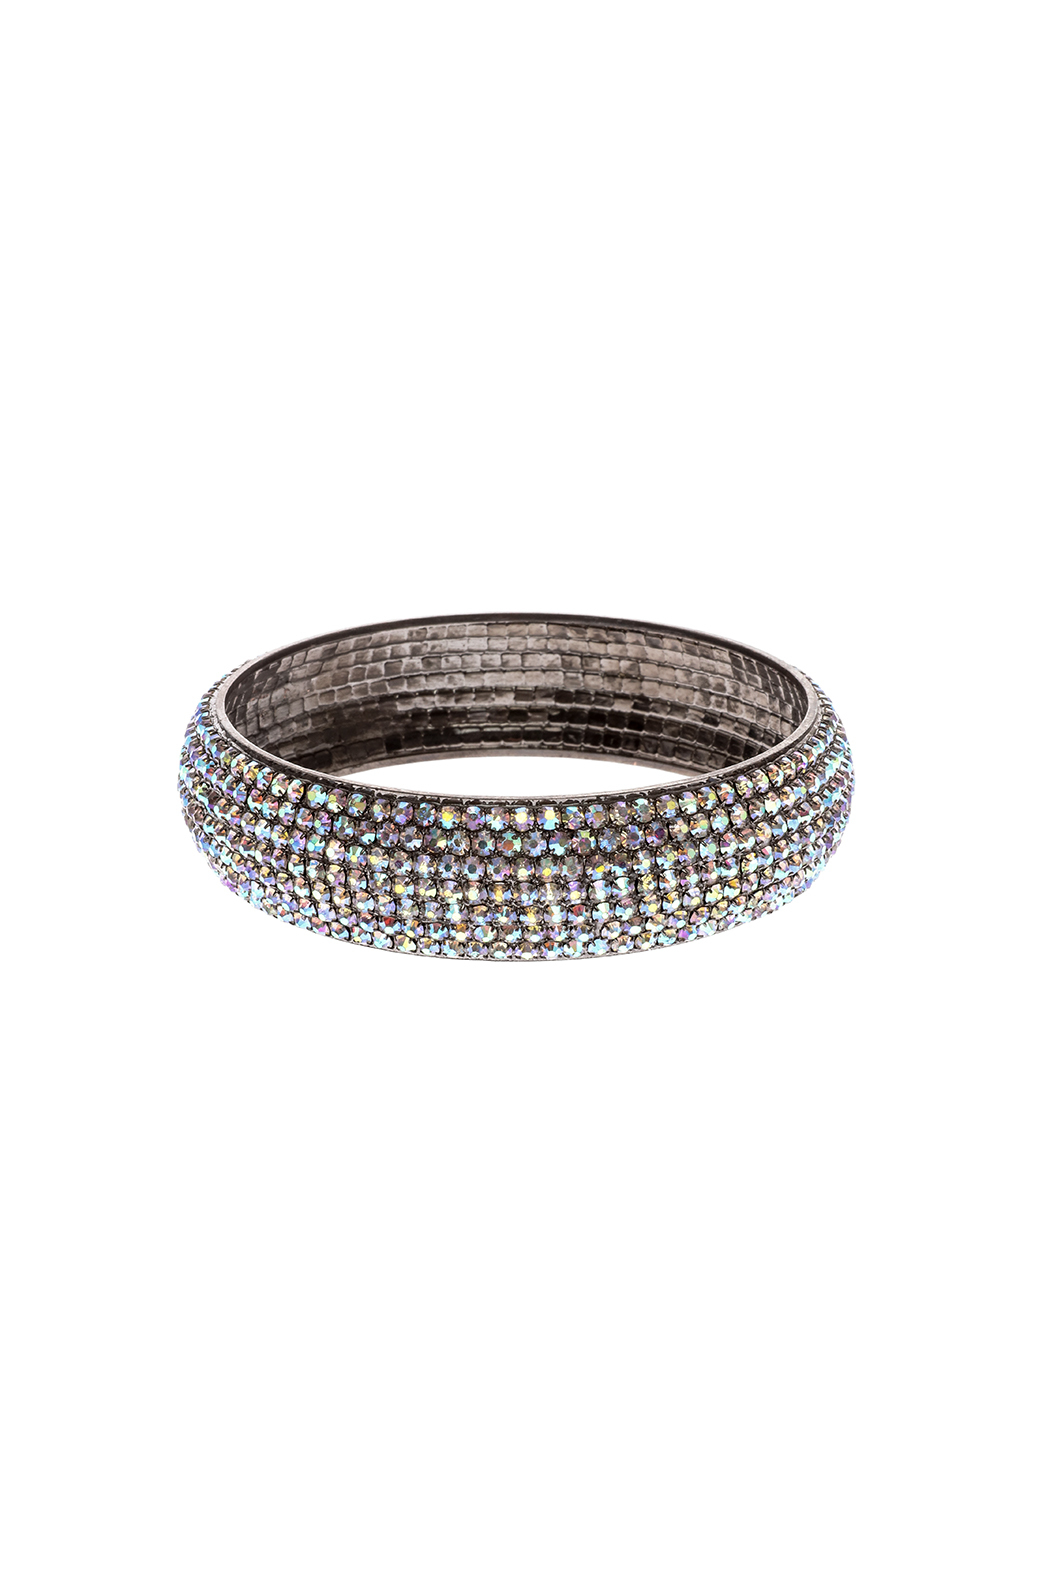 Rings & Things Rhinestone Studded Bangle - Main Image